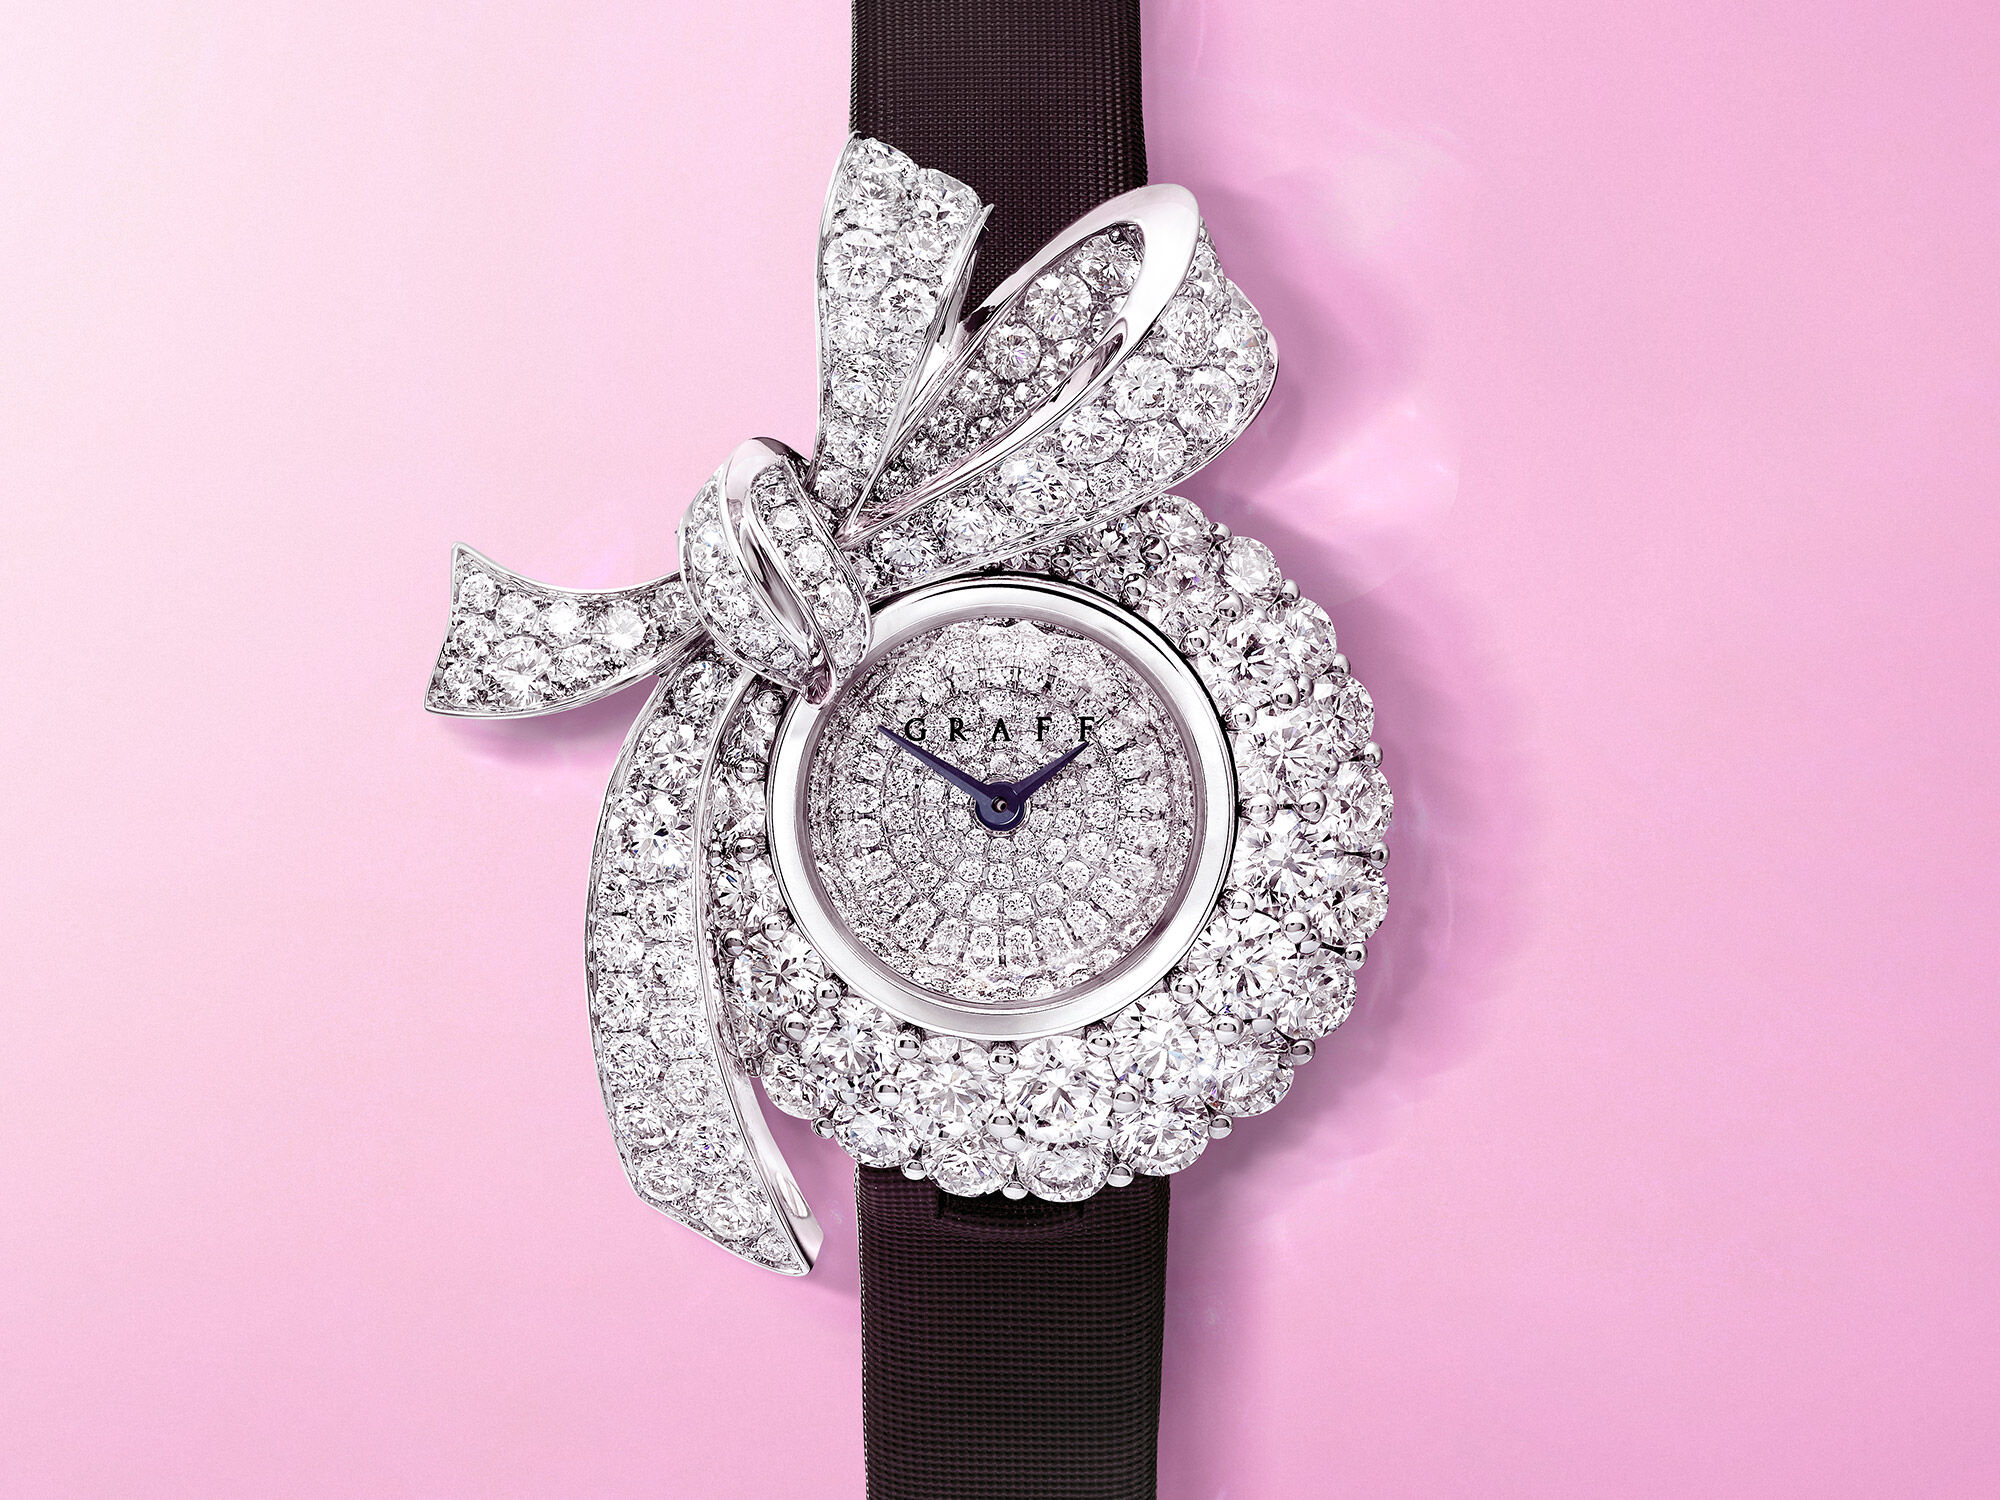 A Graff Tilda's Bow diamond watch with pear shape drop on a pink background